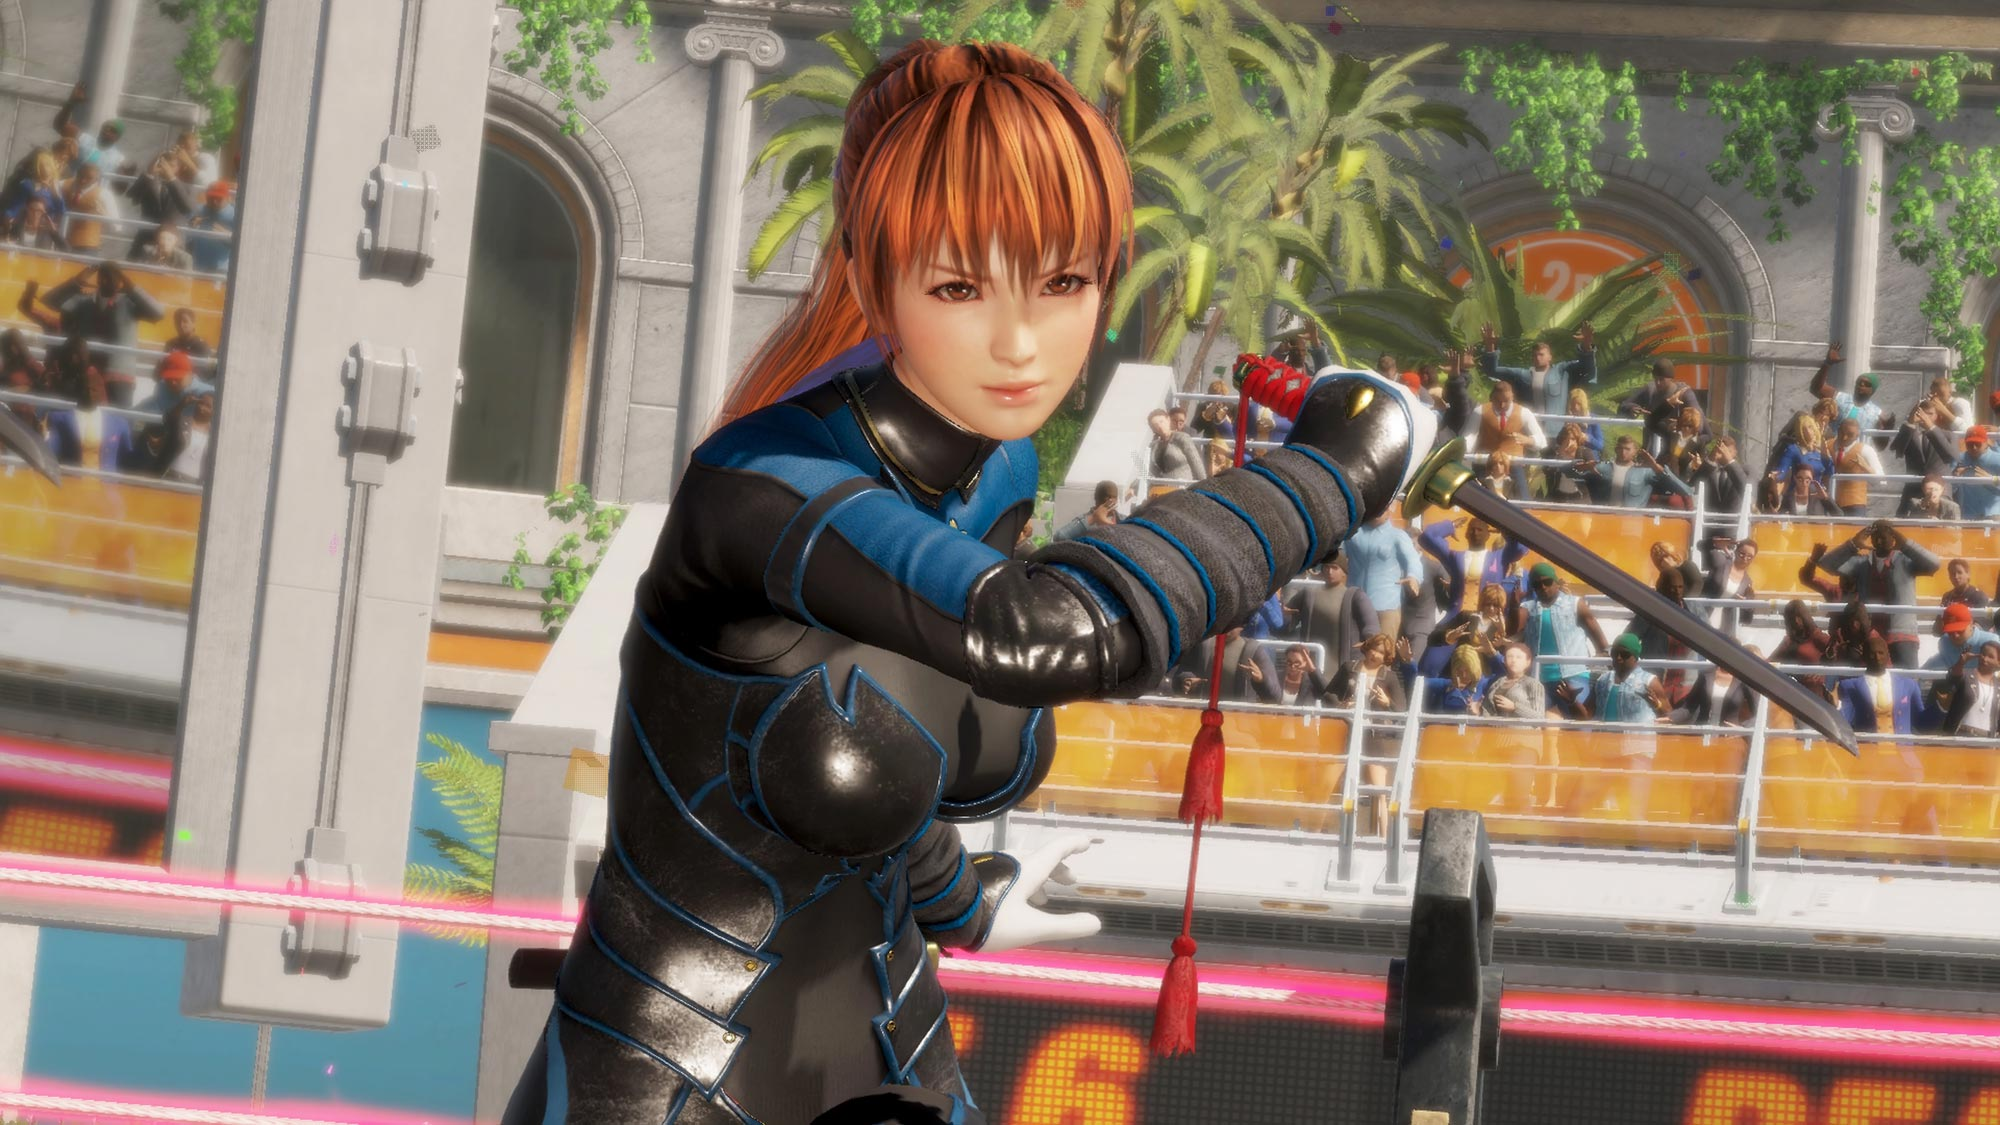 Dead or Alive 6 online beta screenshots 4 out of 6 image gallery